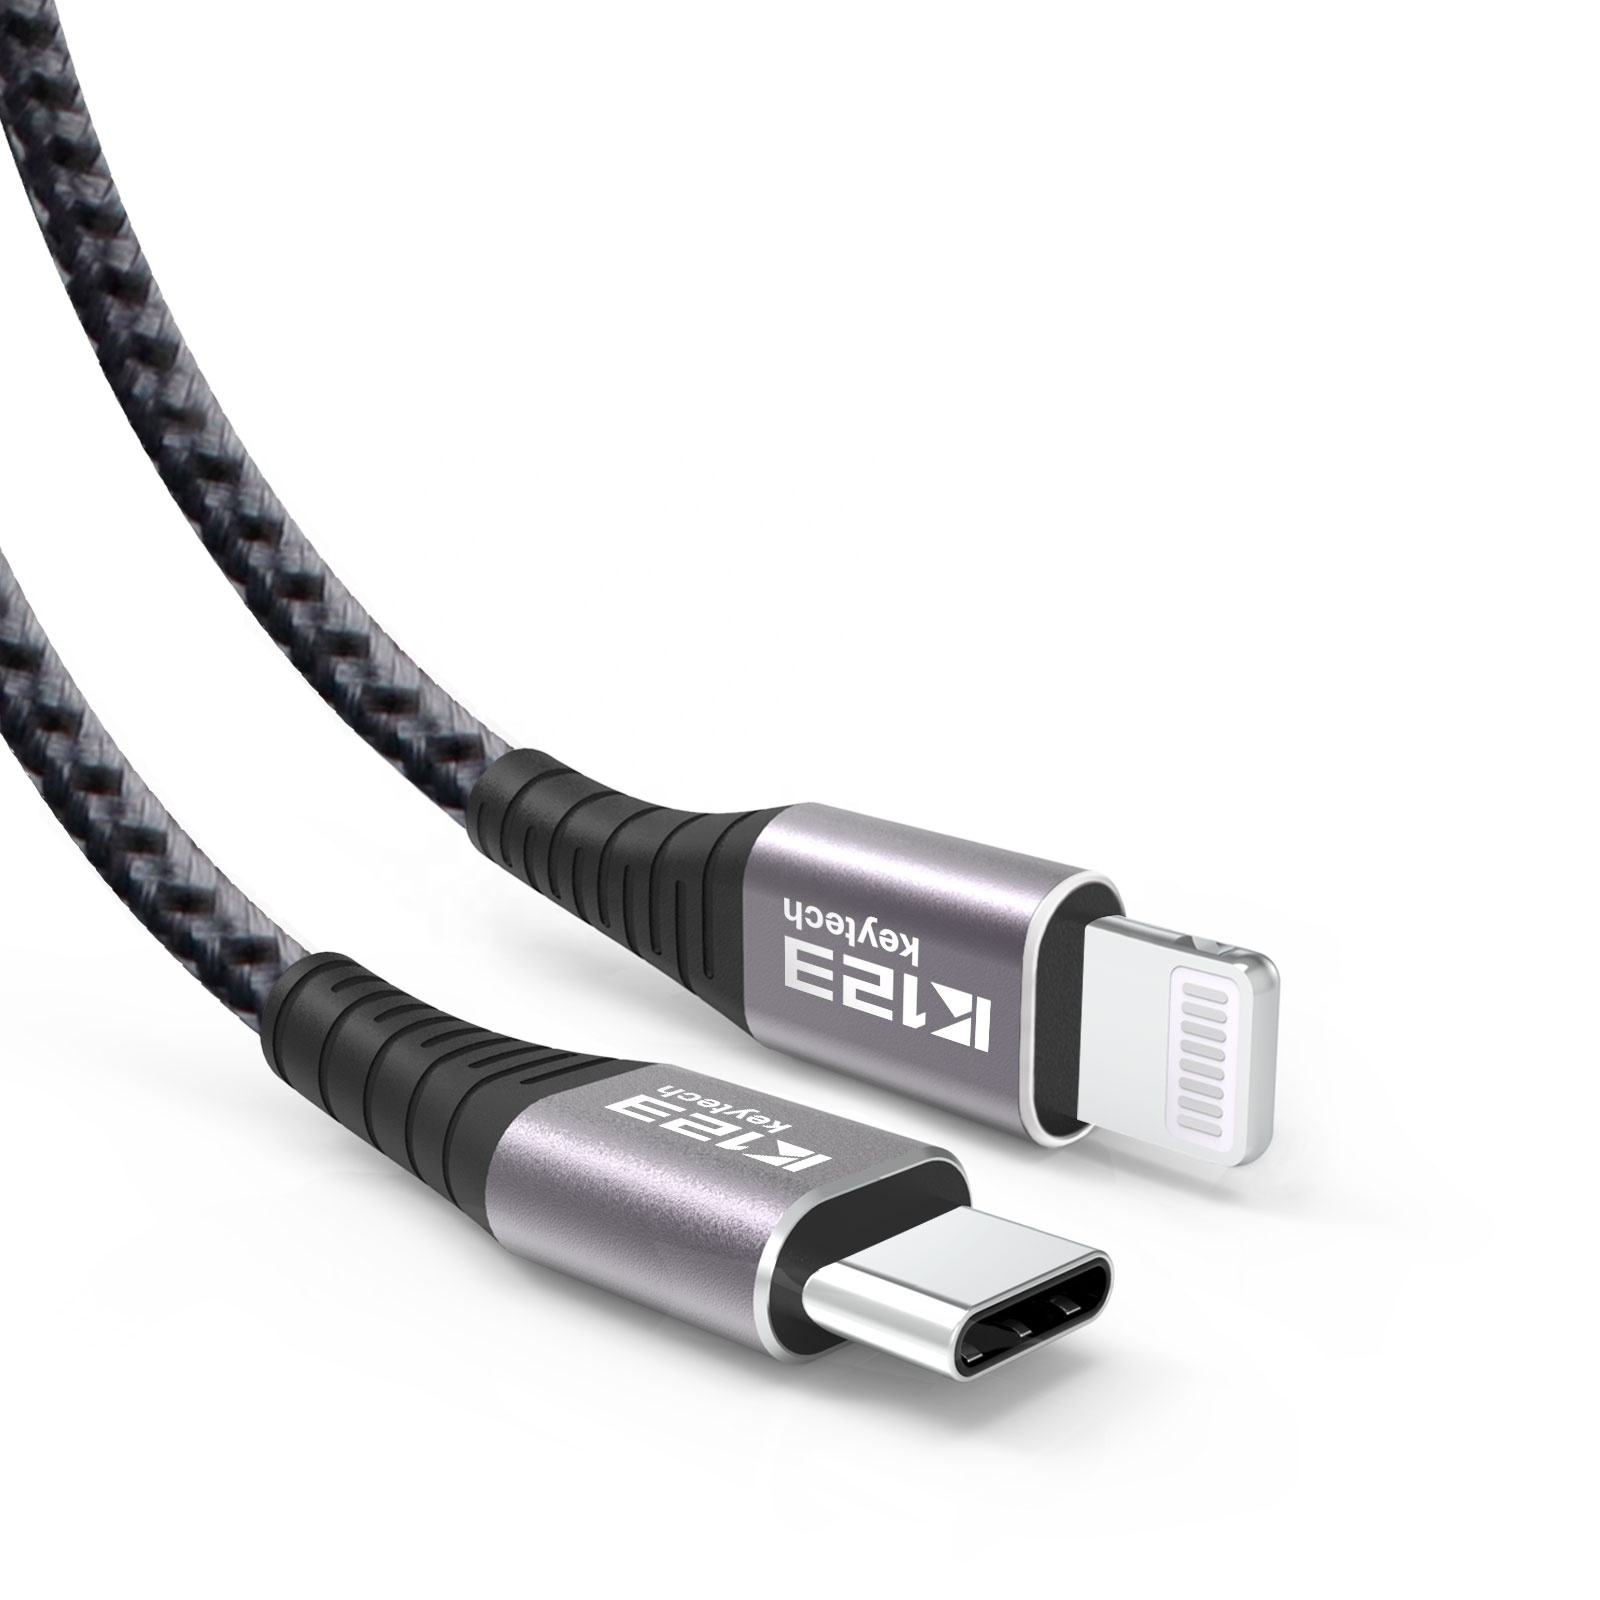 C94 Braided wire type <strong>c</strong> fast cable for iPhone for Macbook Power usb cable data